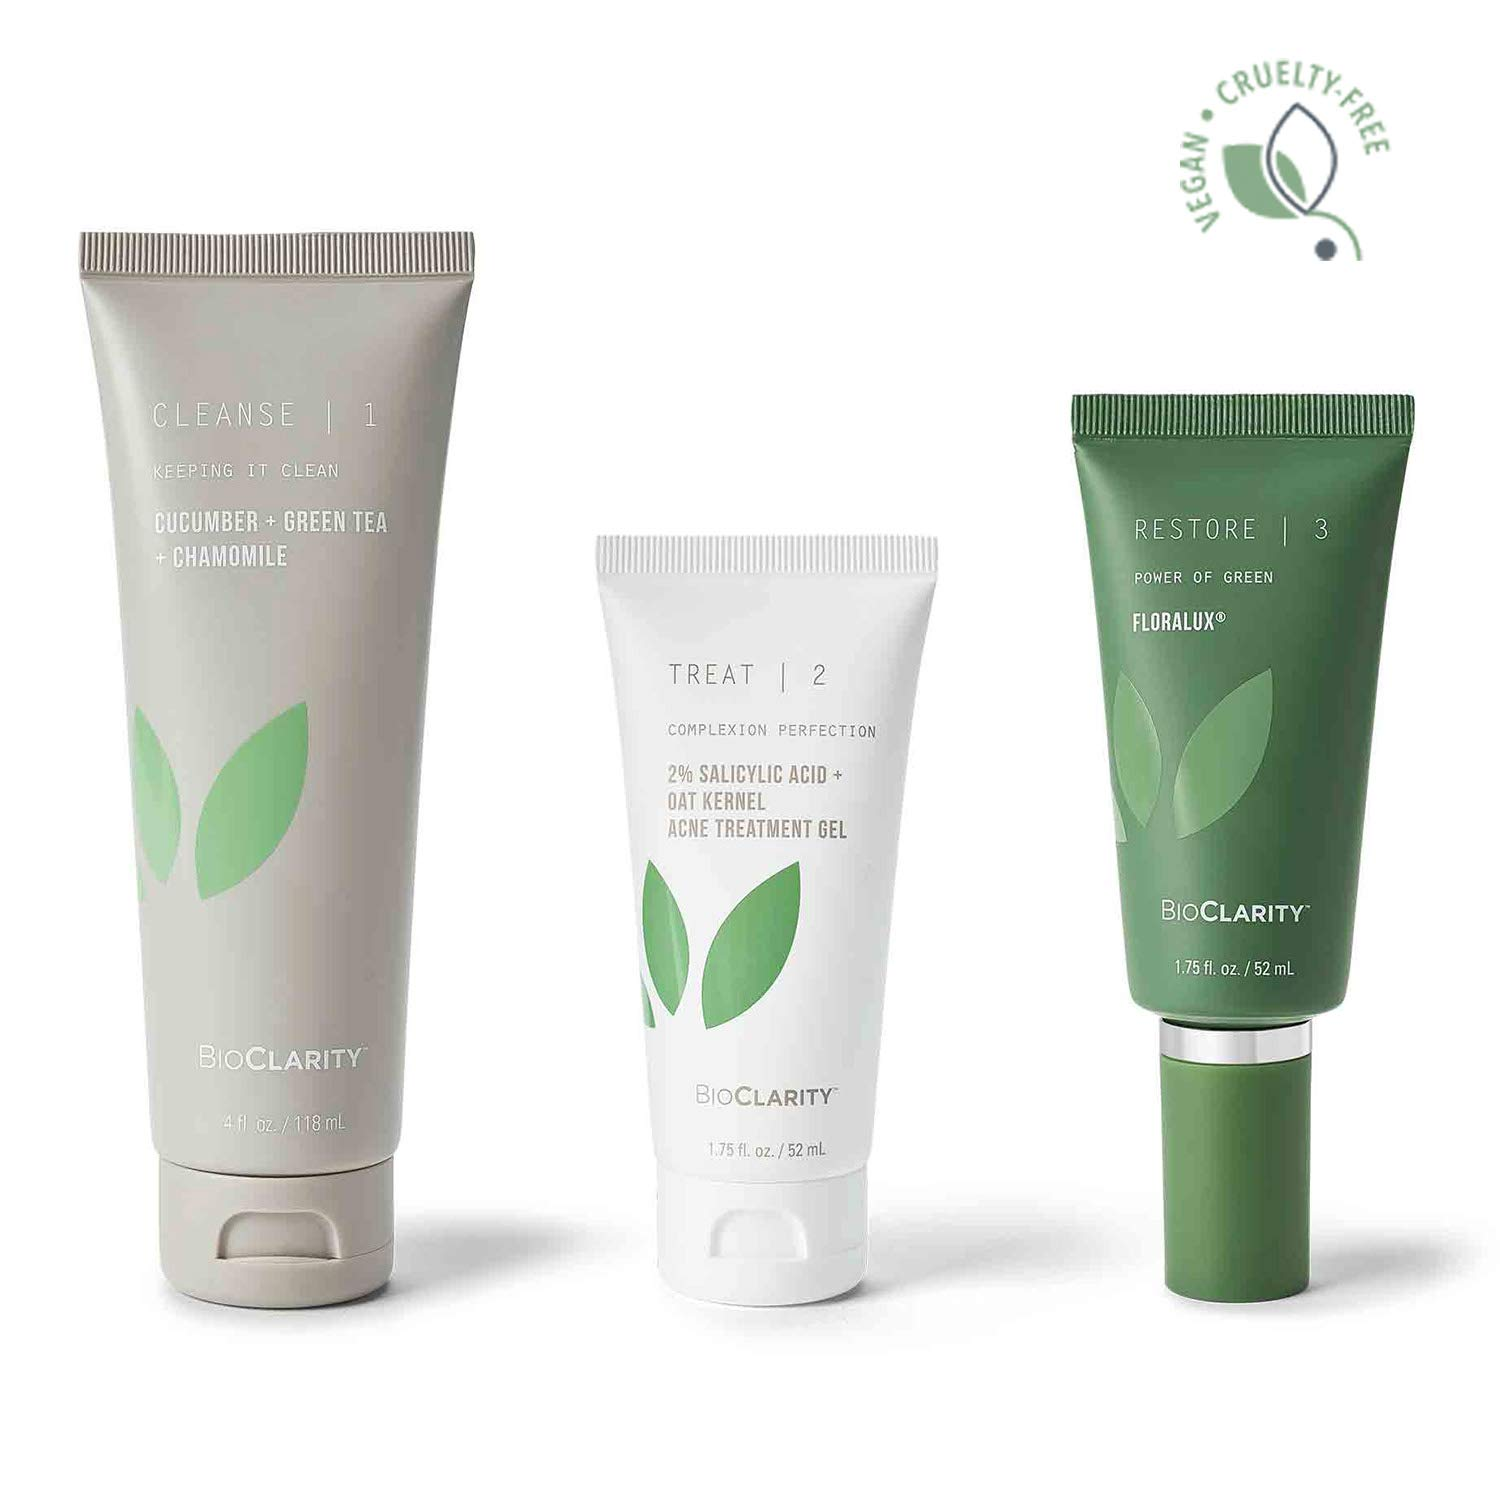 bioClarity Clear Skin Routine (60 day) 3-Step Kit for Oily or Acne-prone Skin   100% Vegan, Fight Acne & Soothe Skin